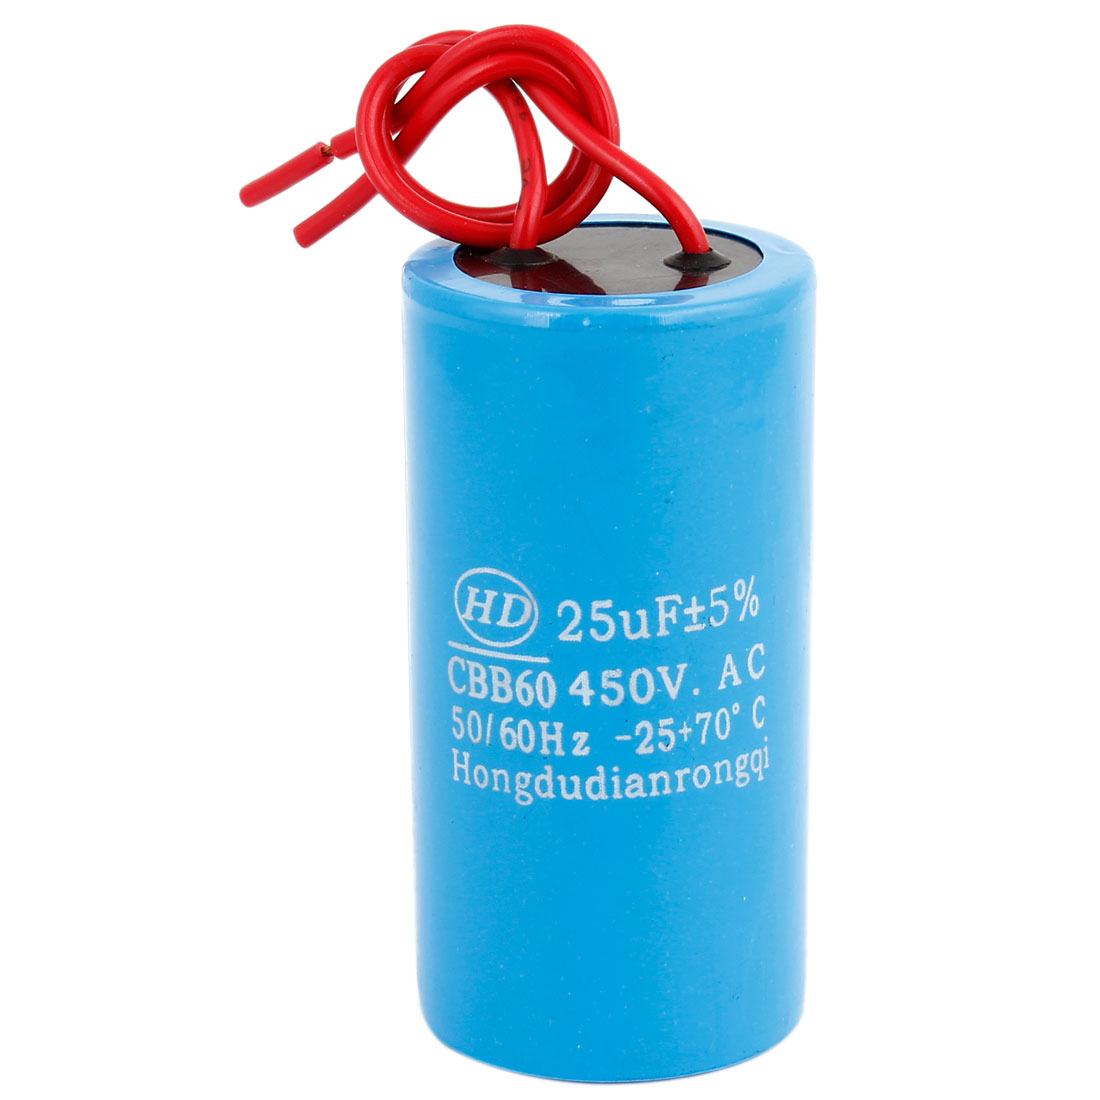 CBB60 25uF 5% Wired Capacitance Motor Star-up Capacitor AC450V 50/60Hz